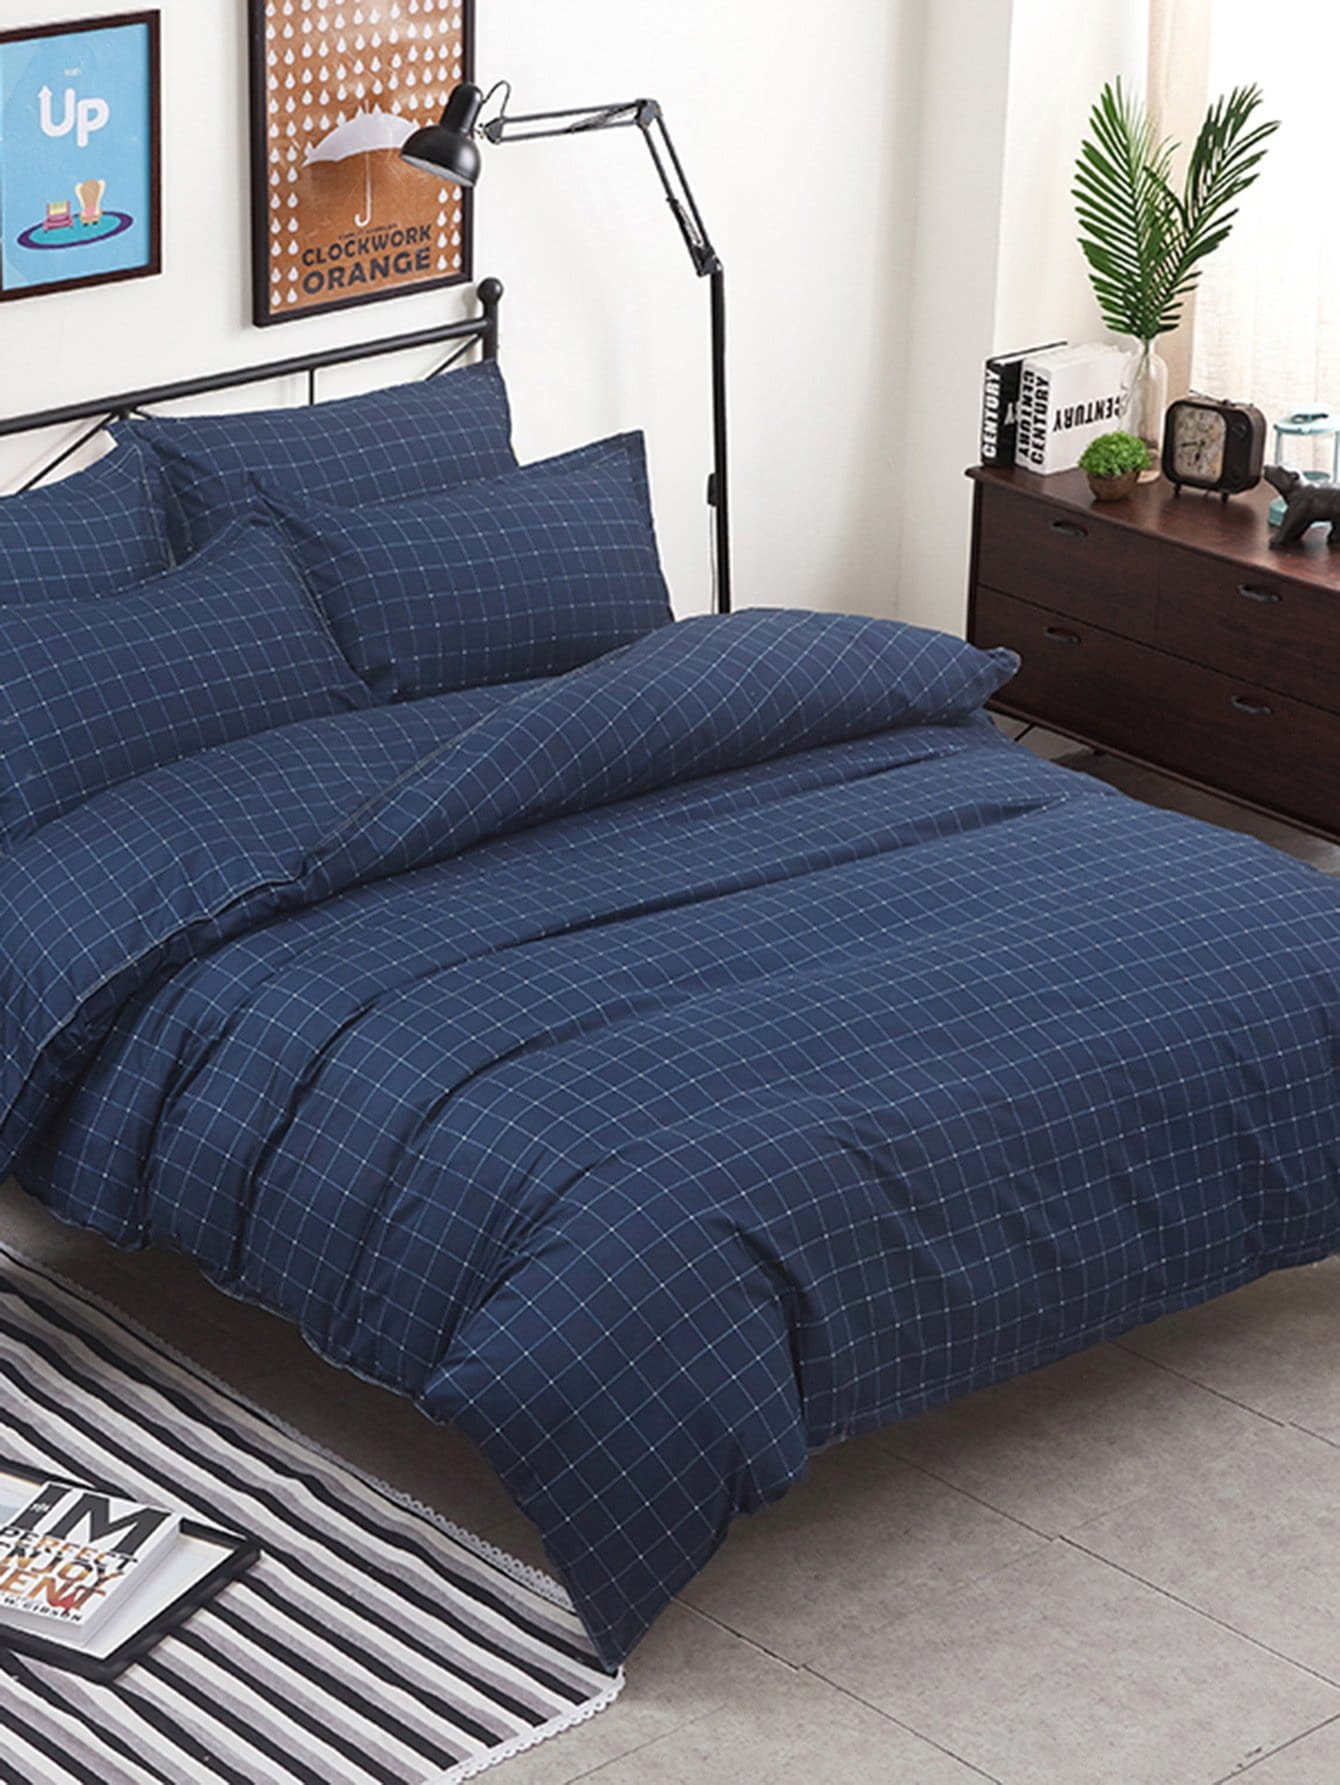 Grid Duvet Cover & Sheet & Sham Set grid duvet cover set